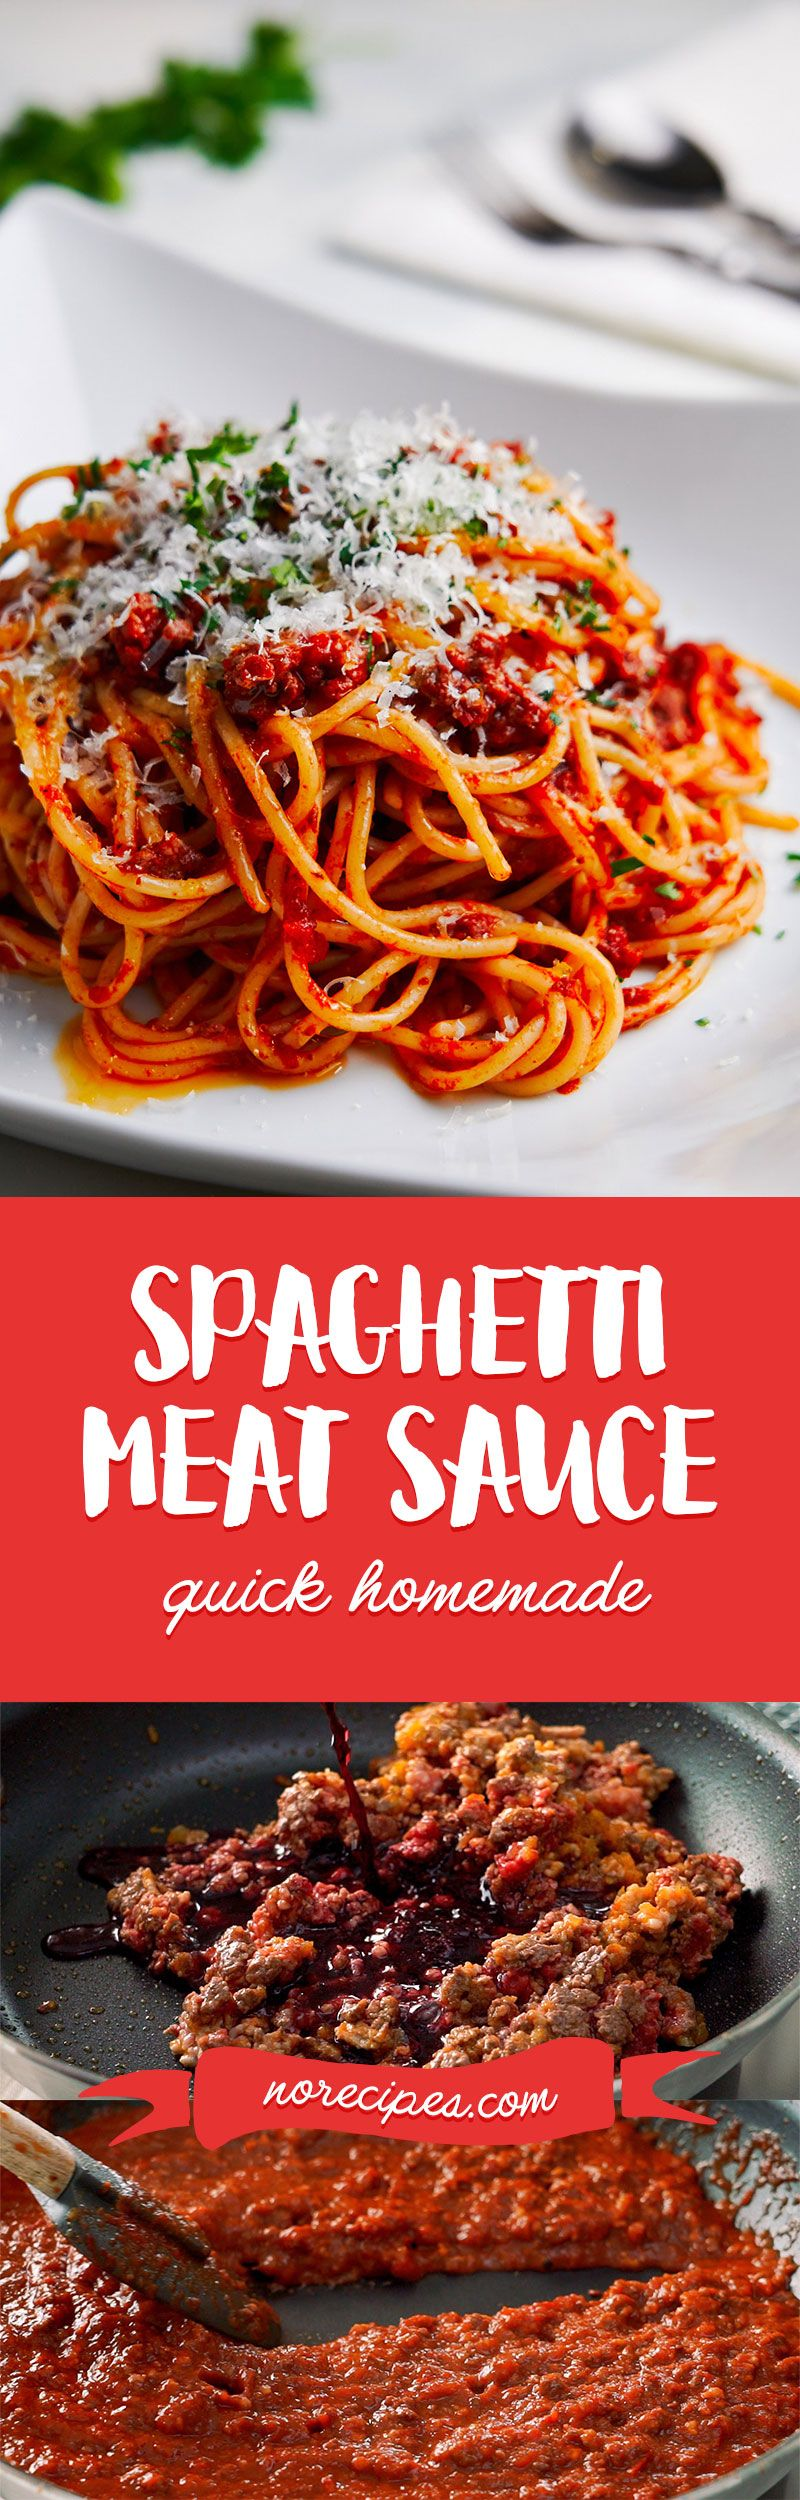 Best Spaghetti Recipe With Homemade Meat Sauce Recipe In 2020 Best Spaghetti Recipe Homemade Meat Sauce Spaghetti Recipes